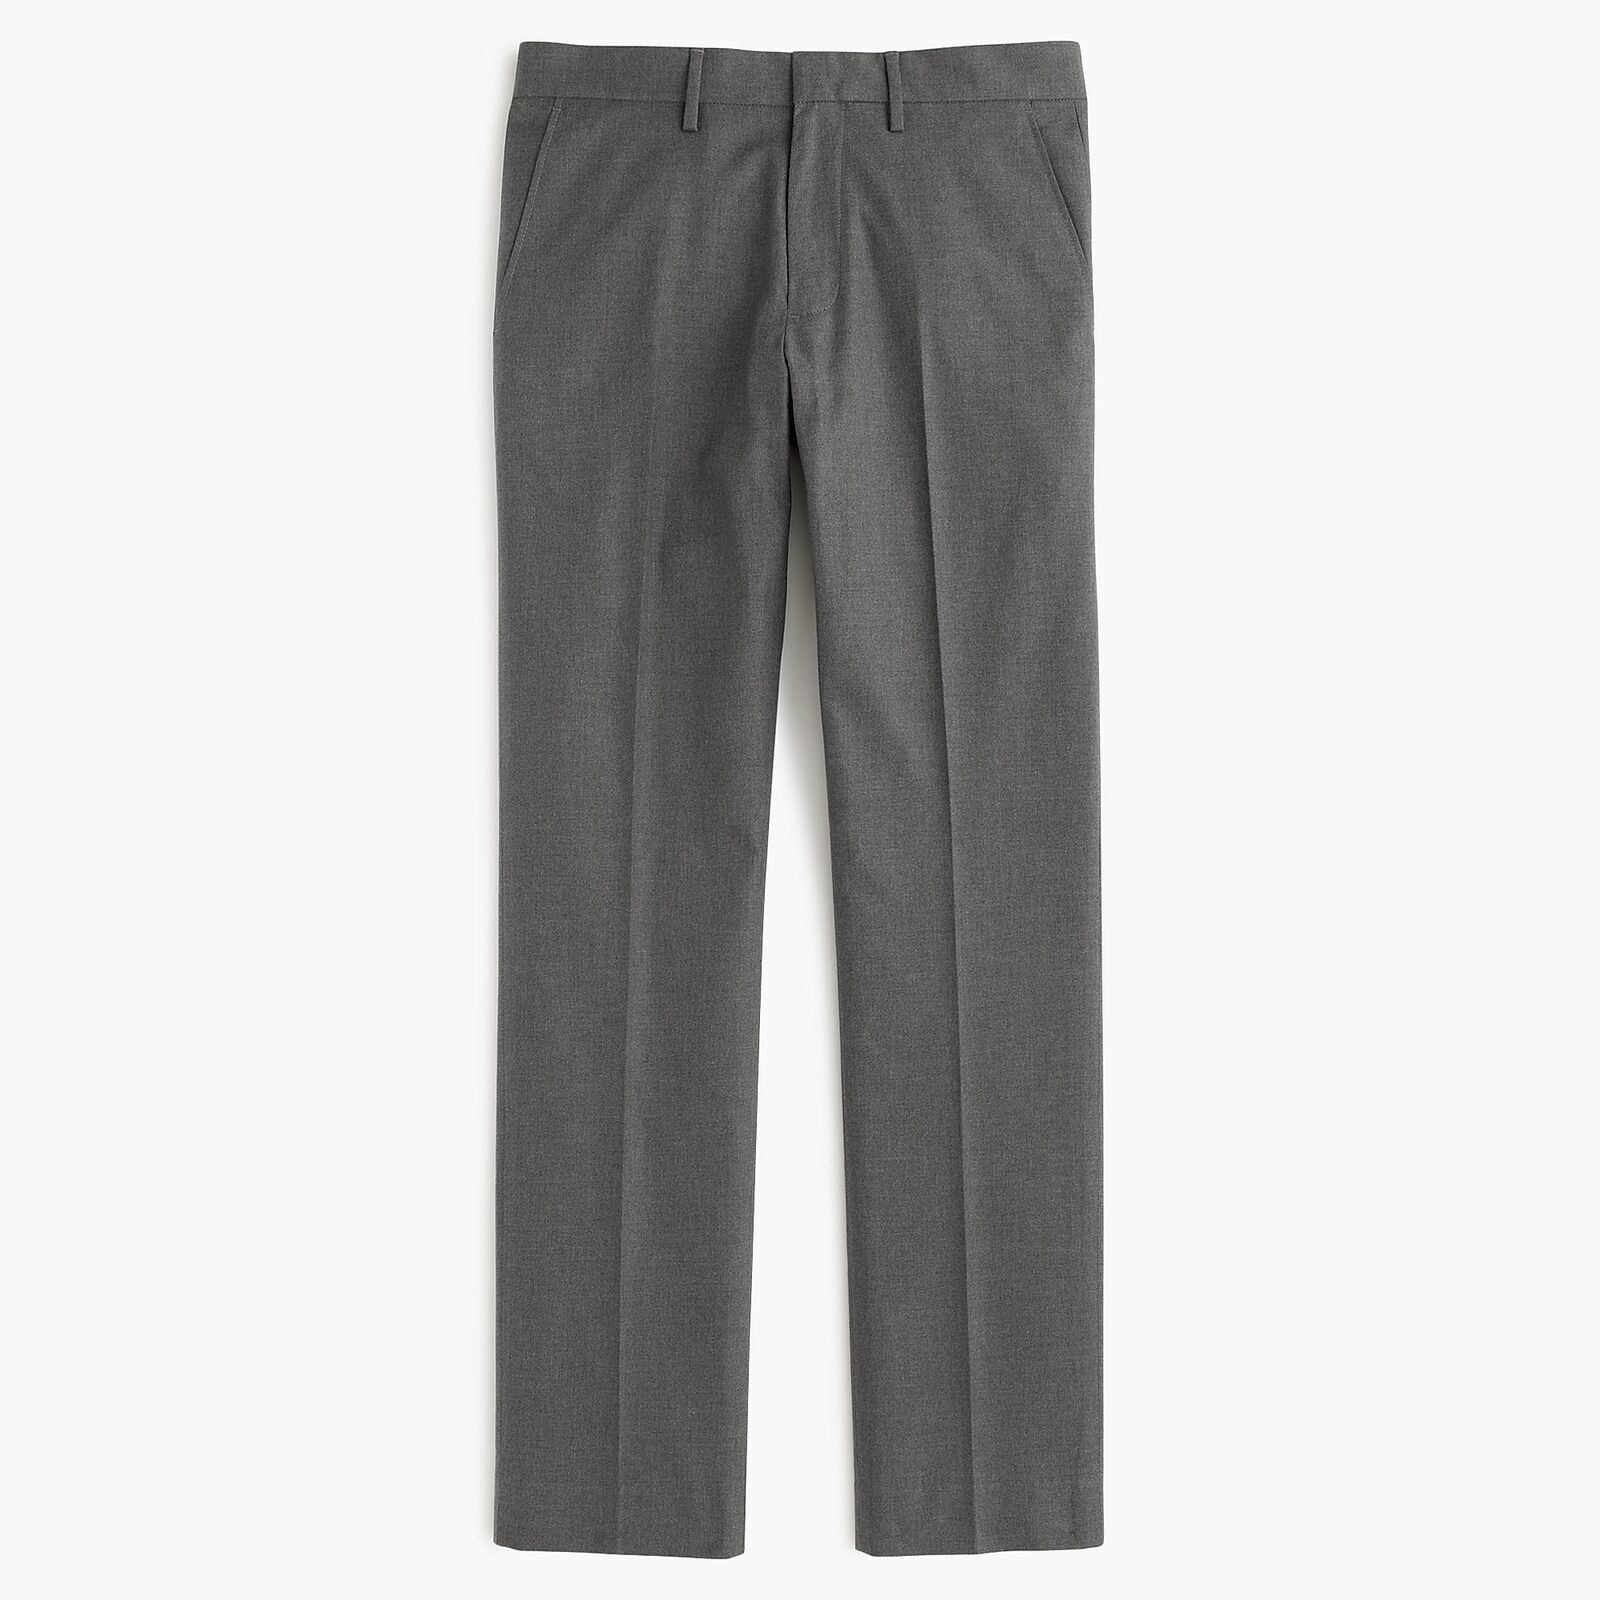 J.Crew Ludlow Classic-Fit Pant In Heather Cotton Twill   31 30   Hthr Grey